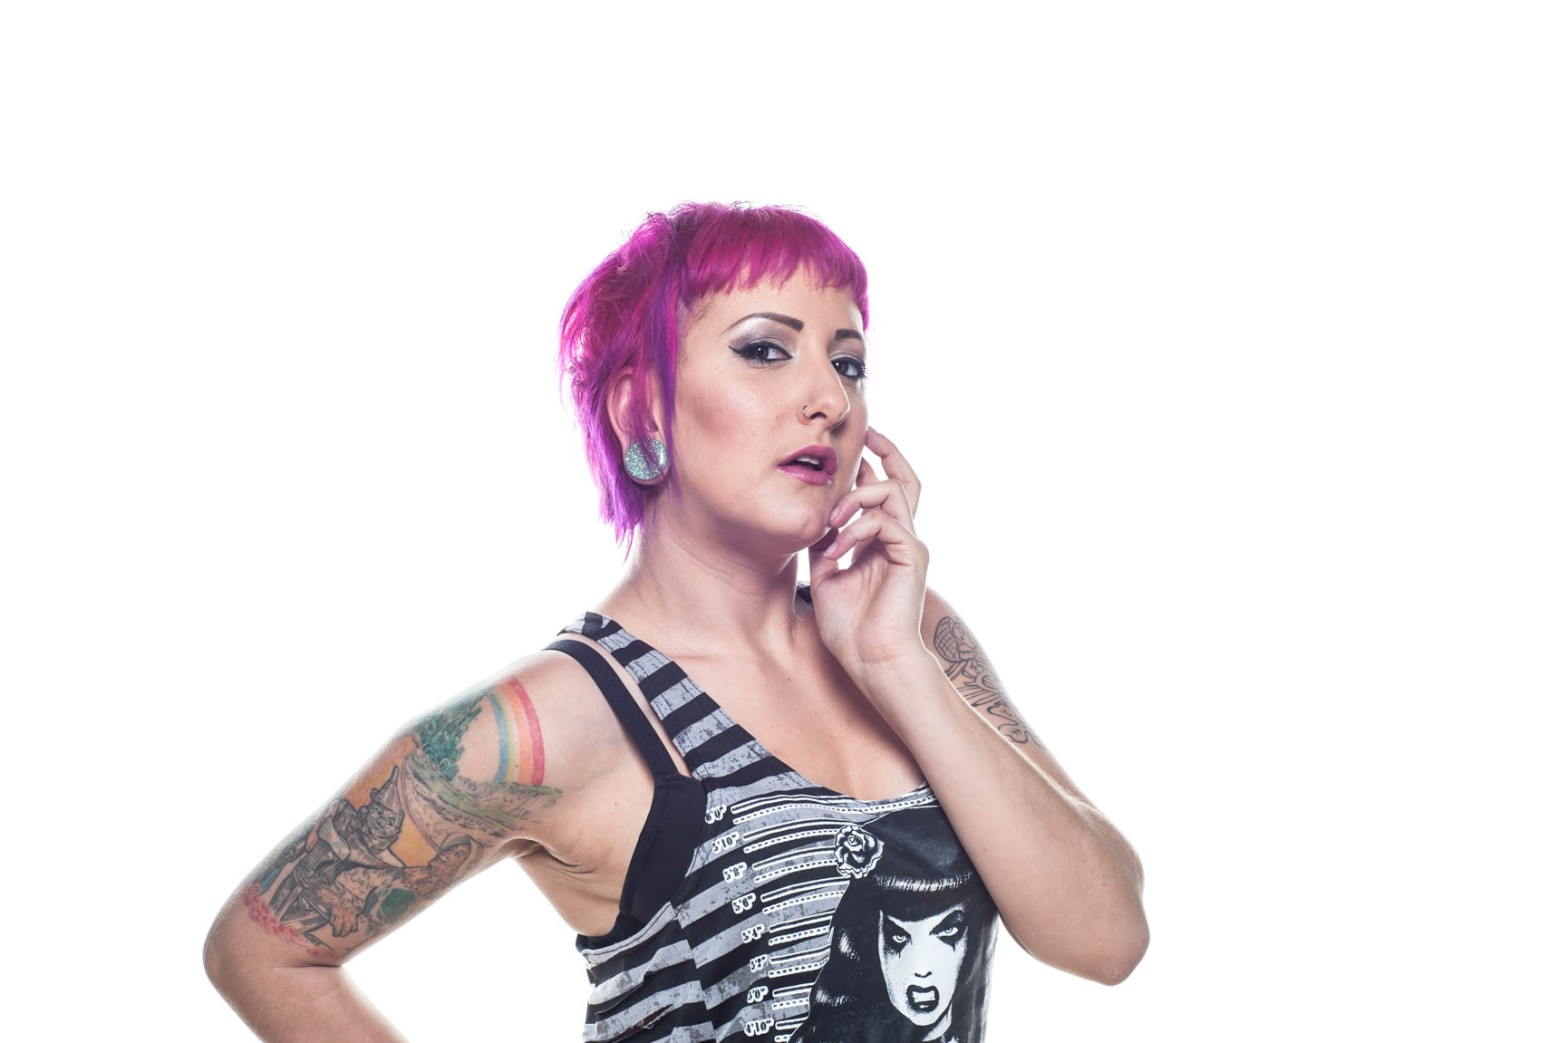 cool tattoed woman headshot by Jenn Grachow JnK Imagery